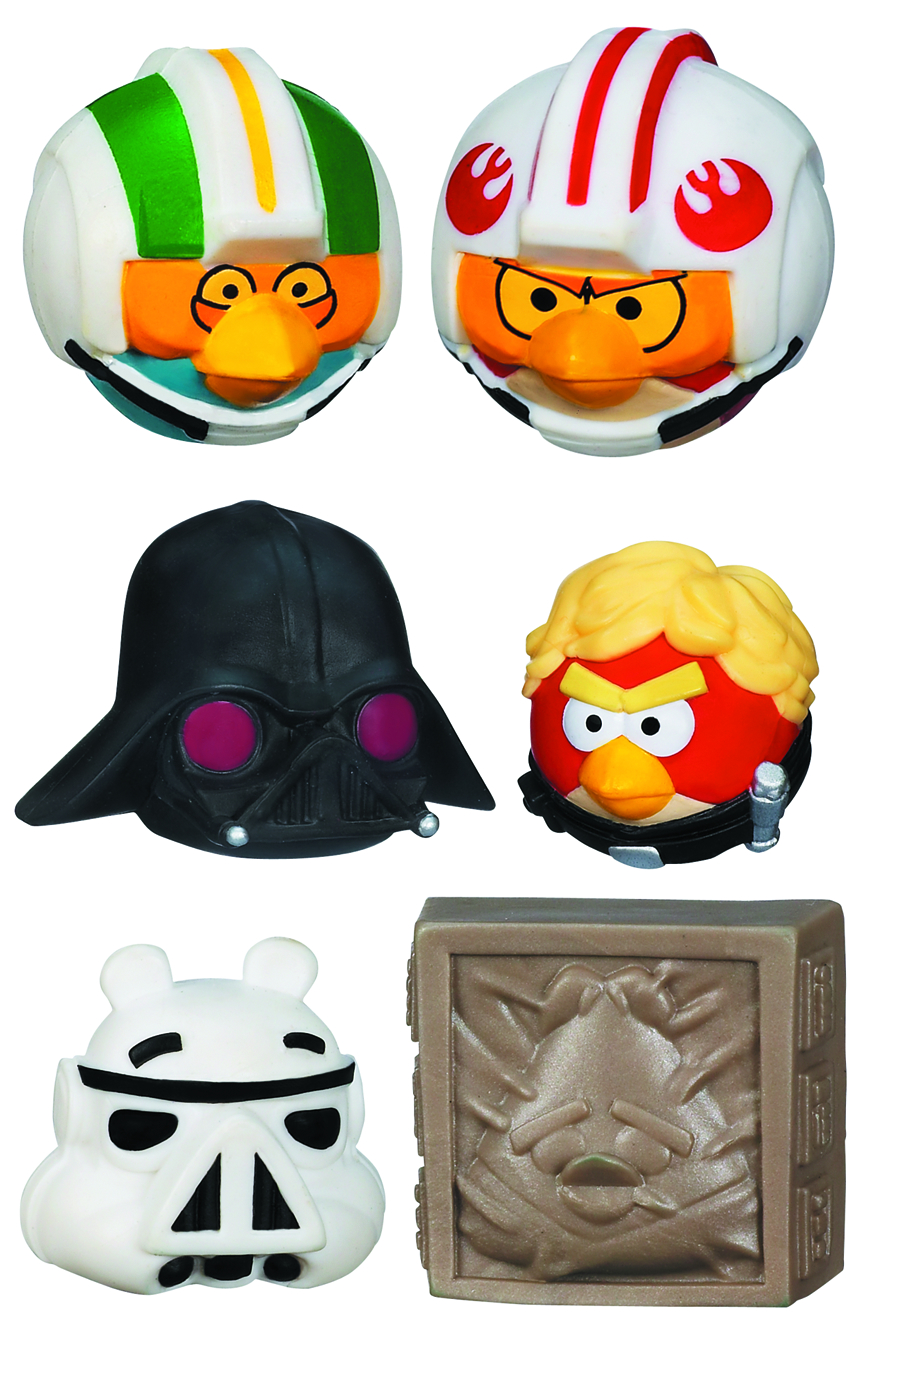 STAR WARS ANGRY BIRDS BMB DISPLAY